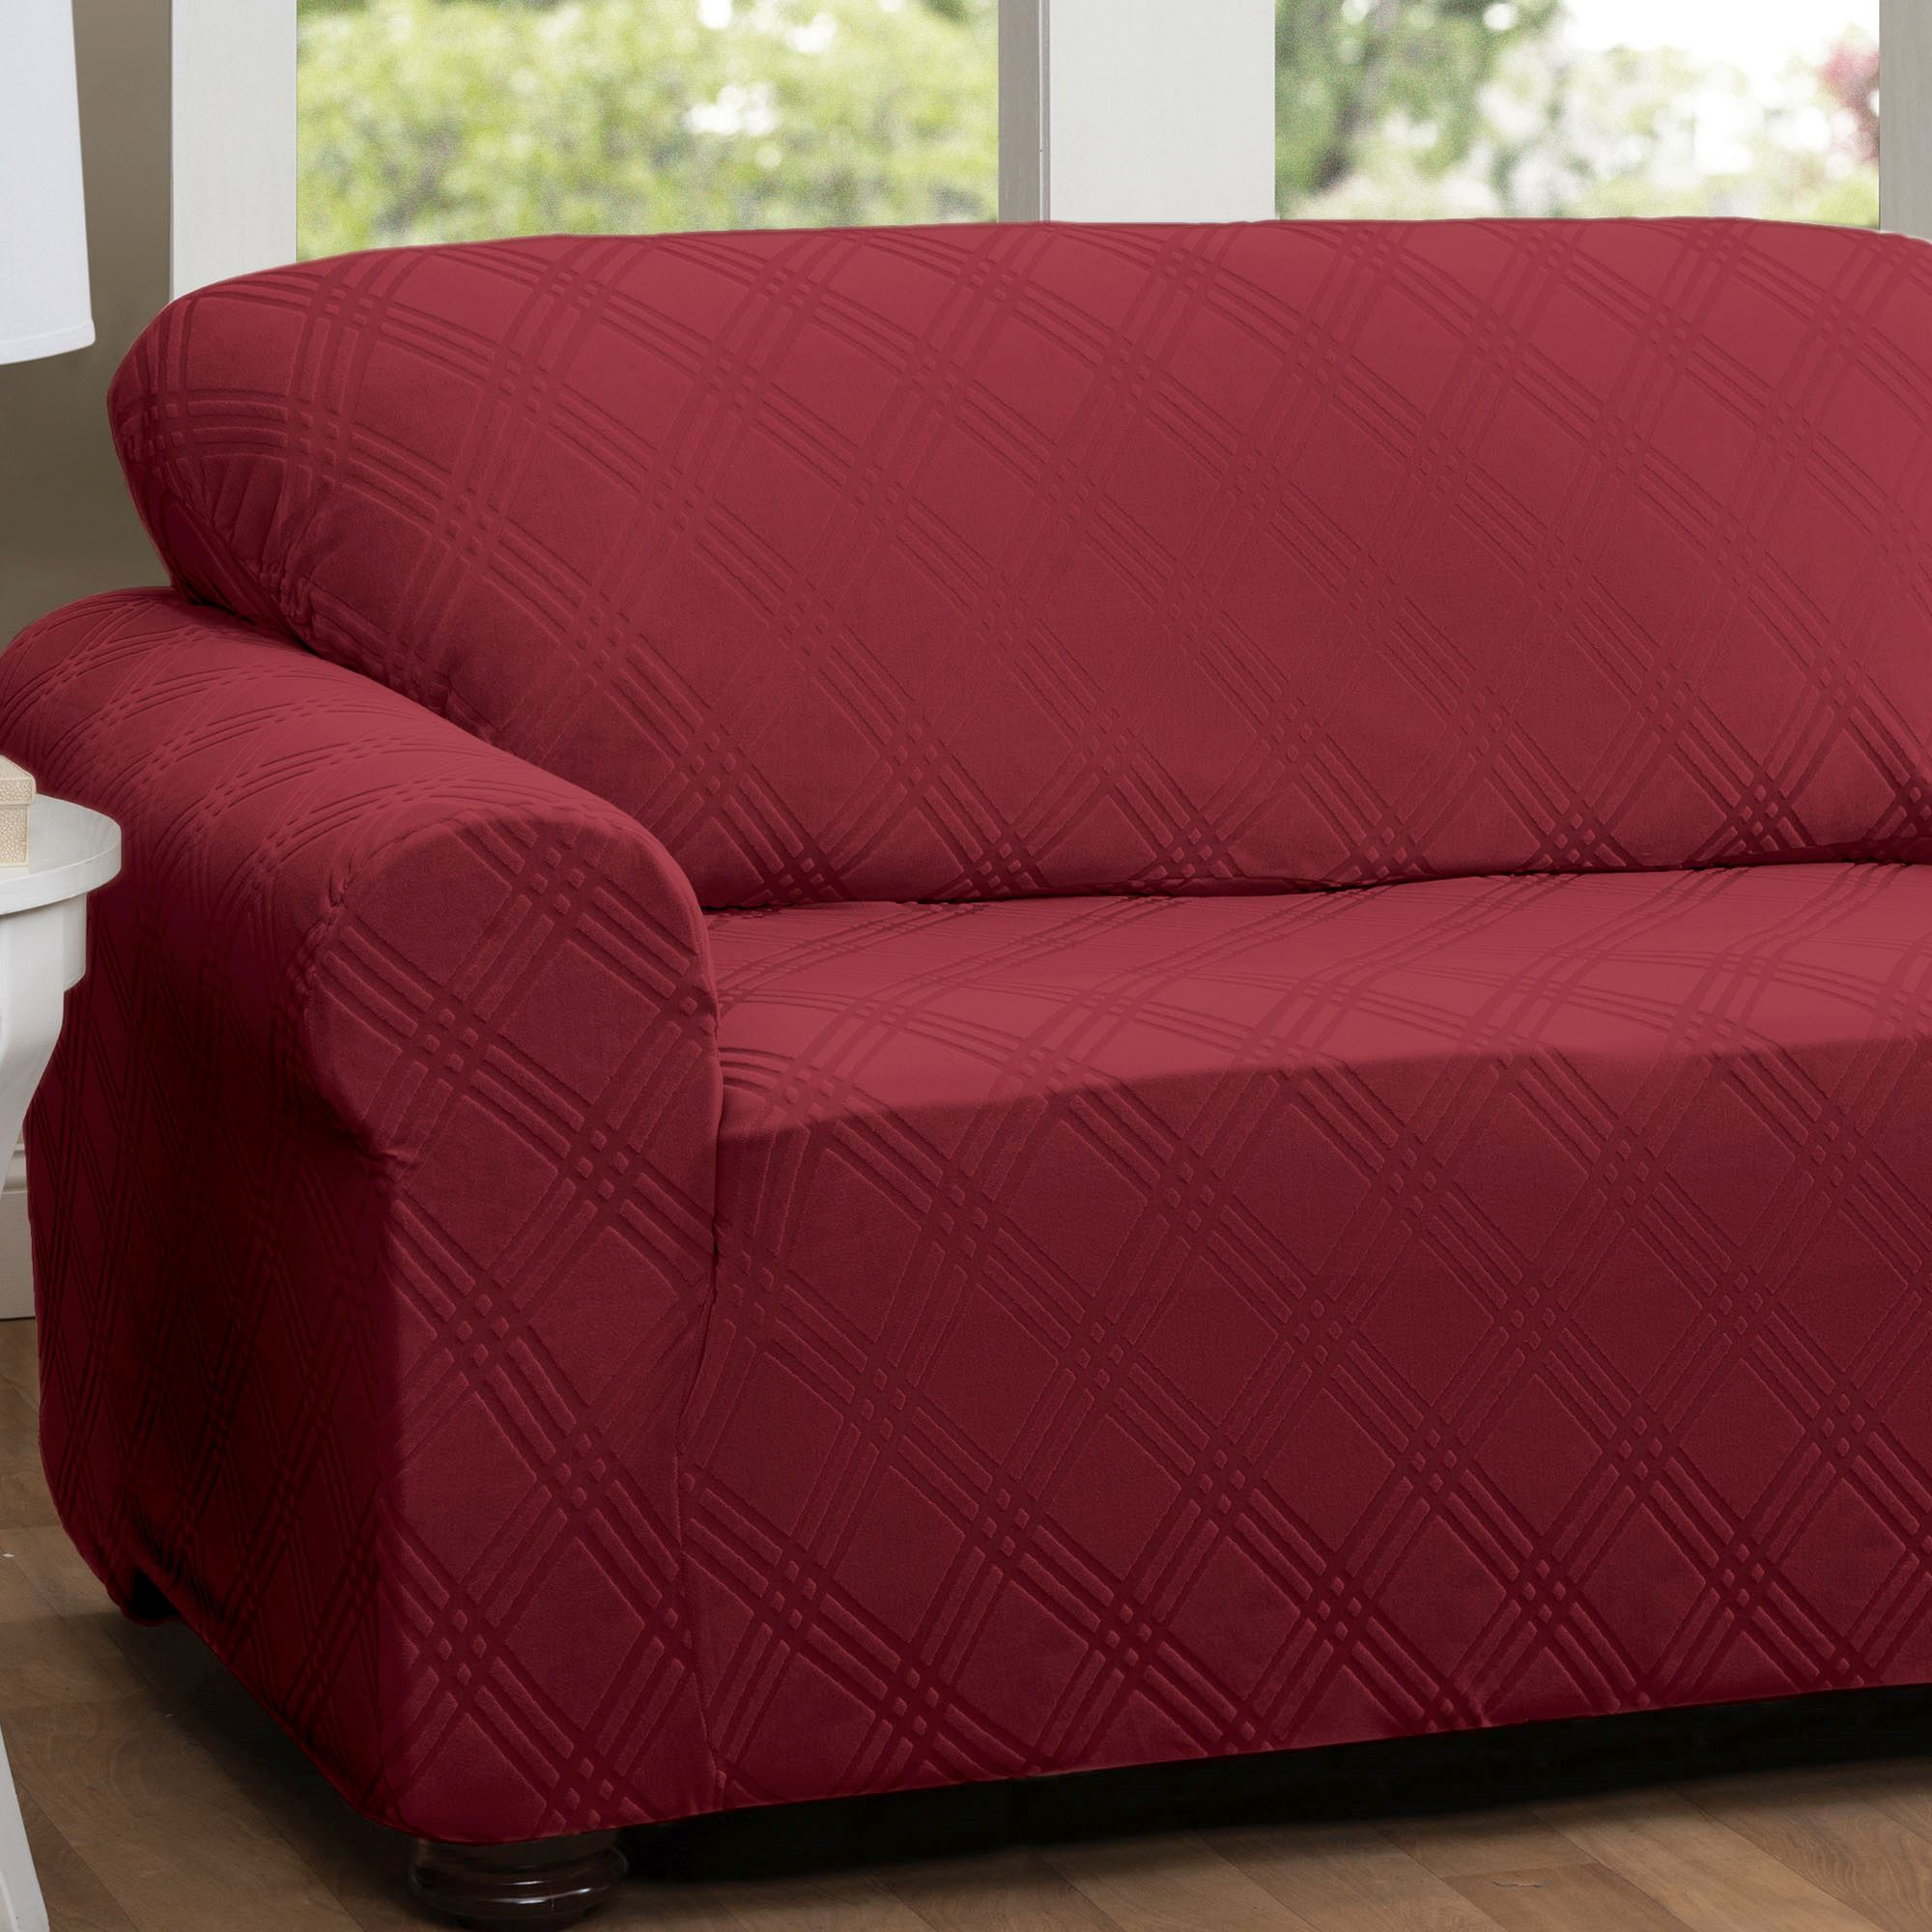 New Slipcover Stretch Sofa Cover Sofa With Loveseat Chair: Double Diamond Stretch Sofa Slipcovers